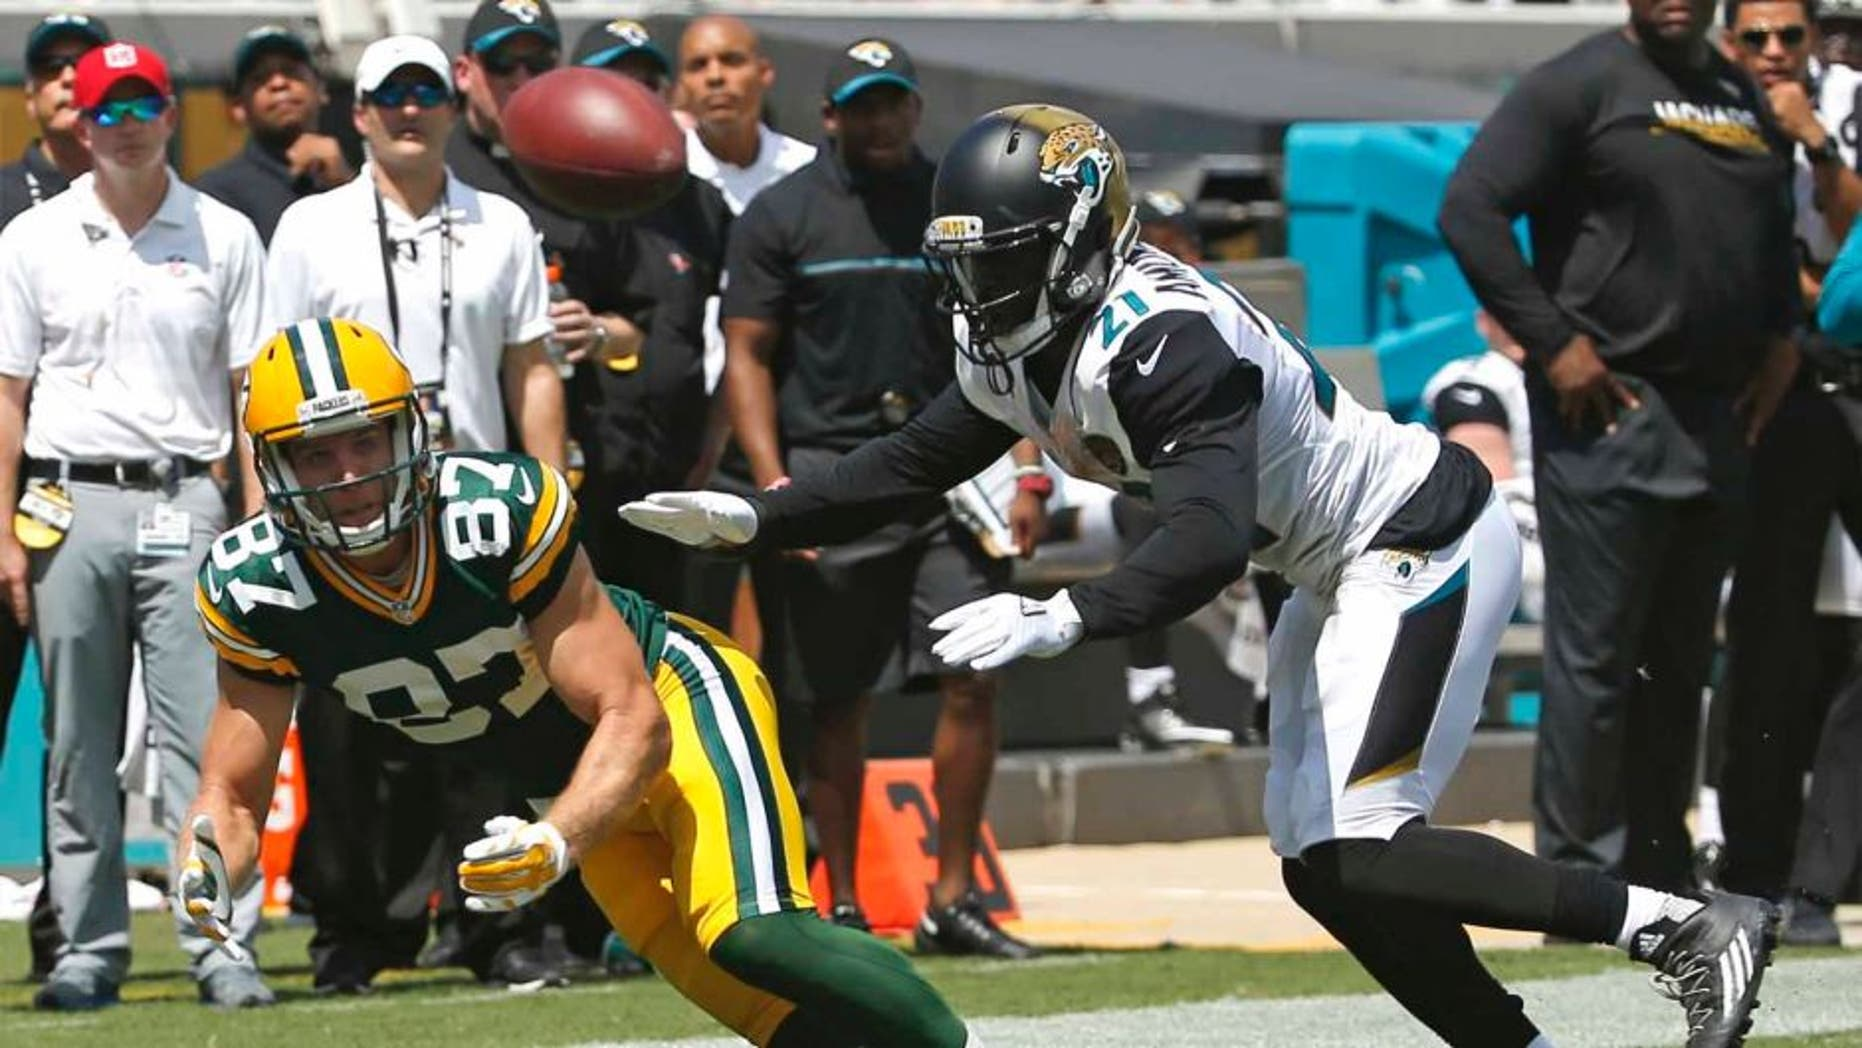 Green Bay Packers wide receiver Jordy Nelson makes a reception in front of Jacksonville Jaguars defensive back Prince Amukamara during the first half in Jacksonville, Fla., Sunday, Sept. 11, 2016.